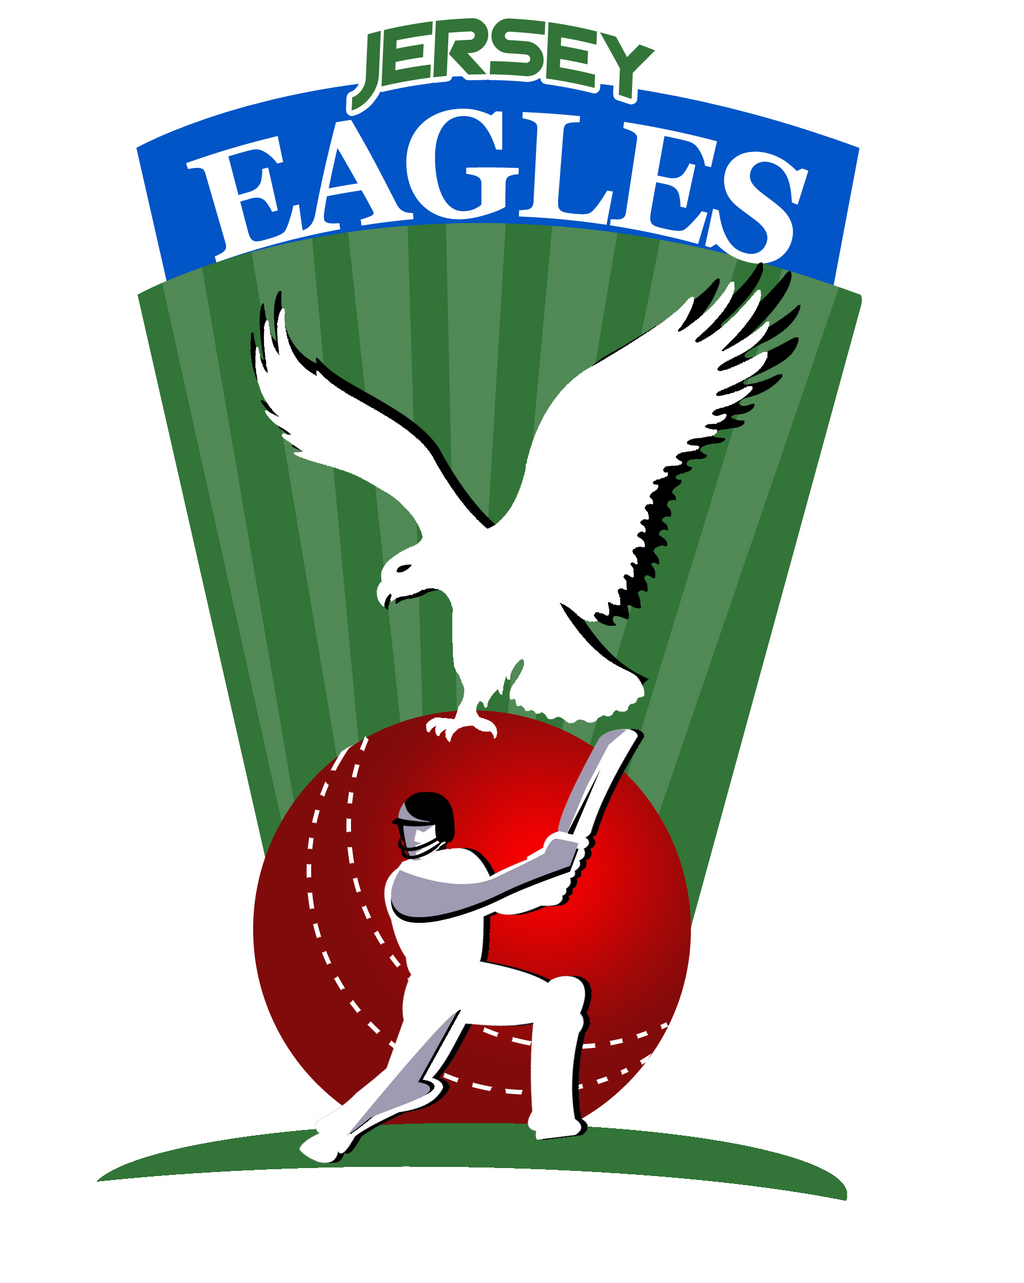 Logo Design for Cricket Team - Jersey Eagles by Dipti-13